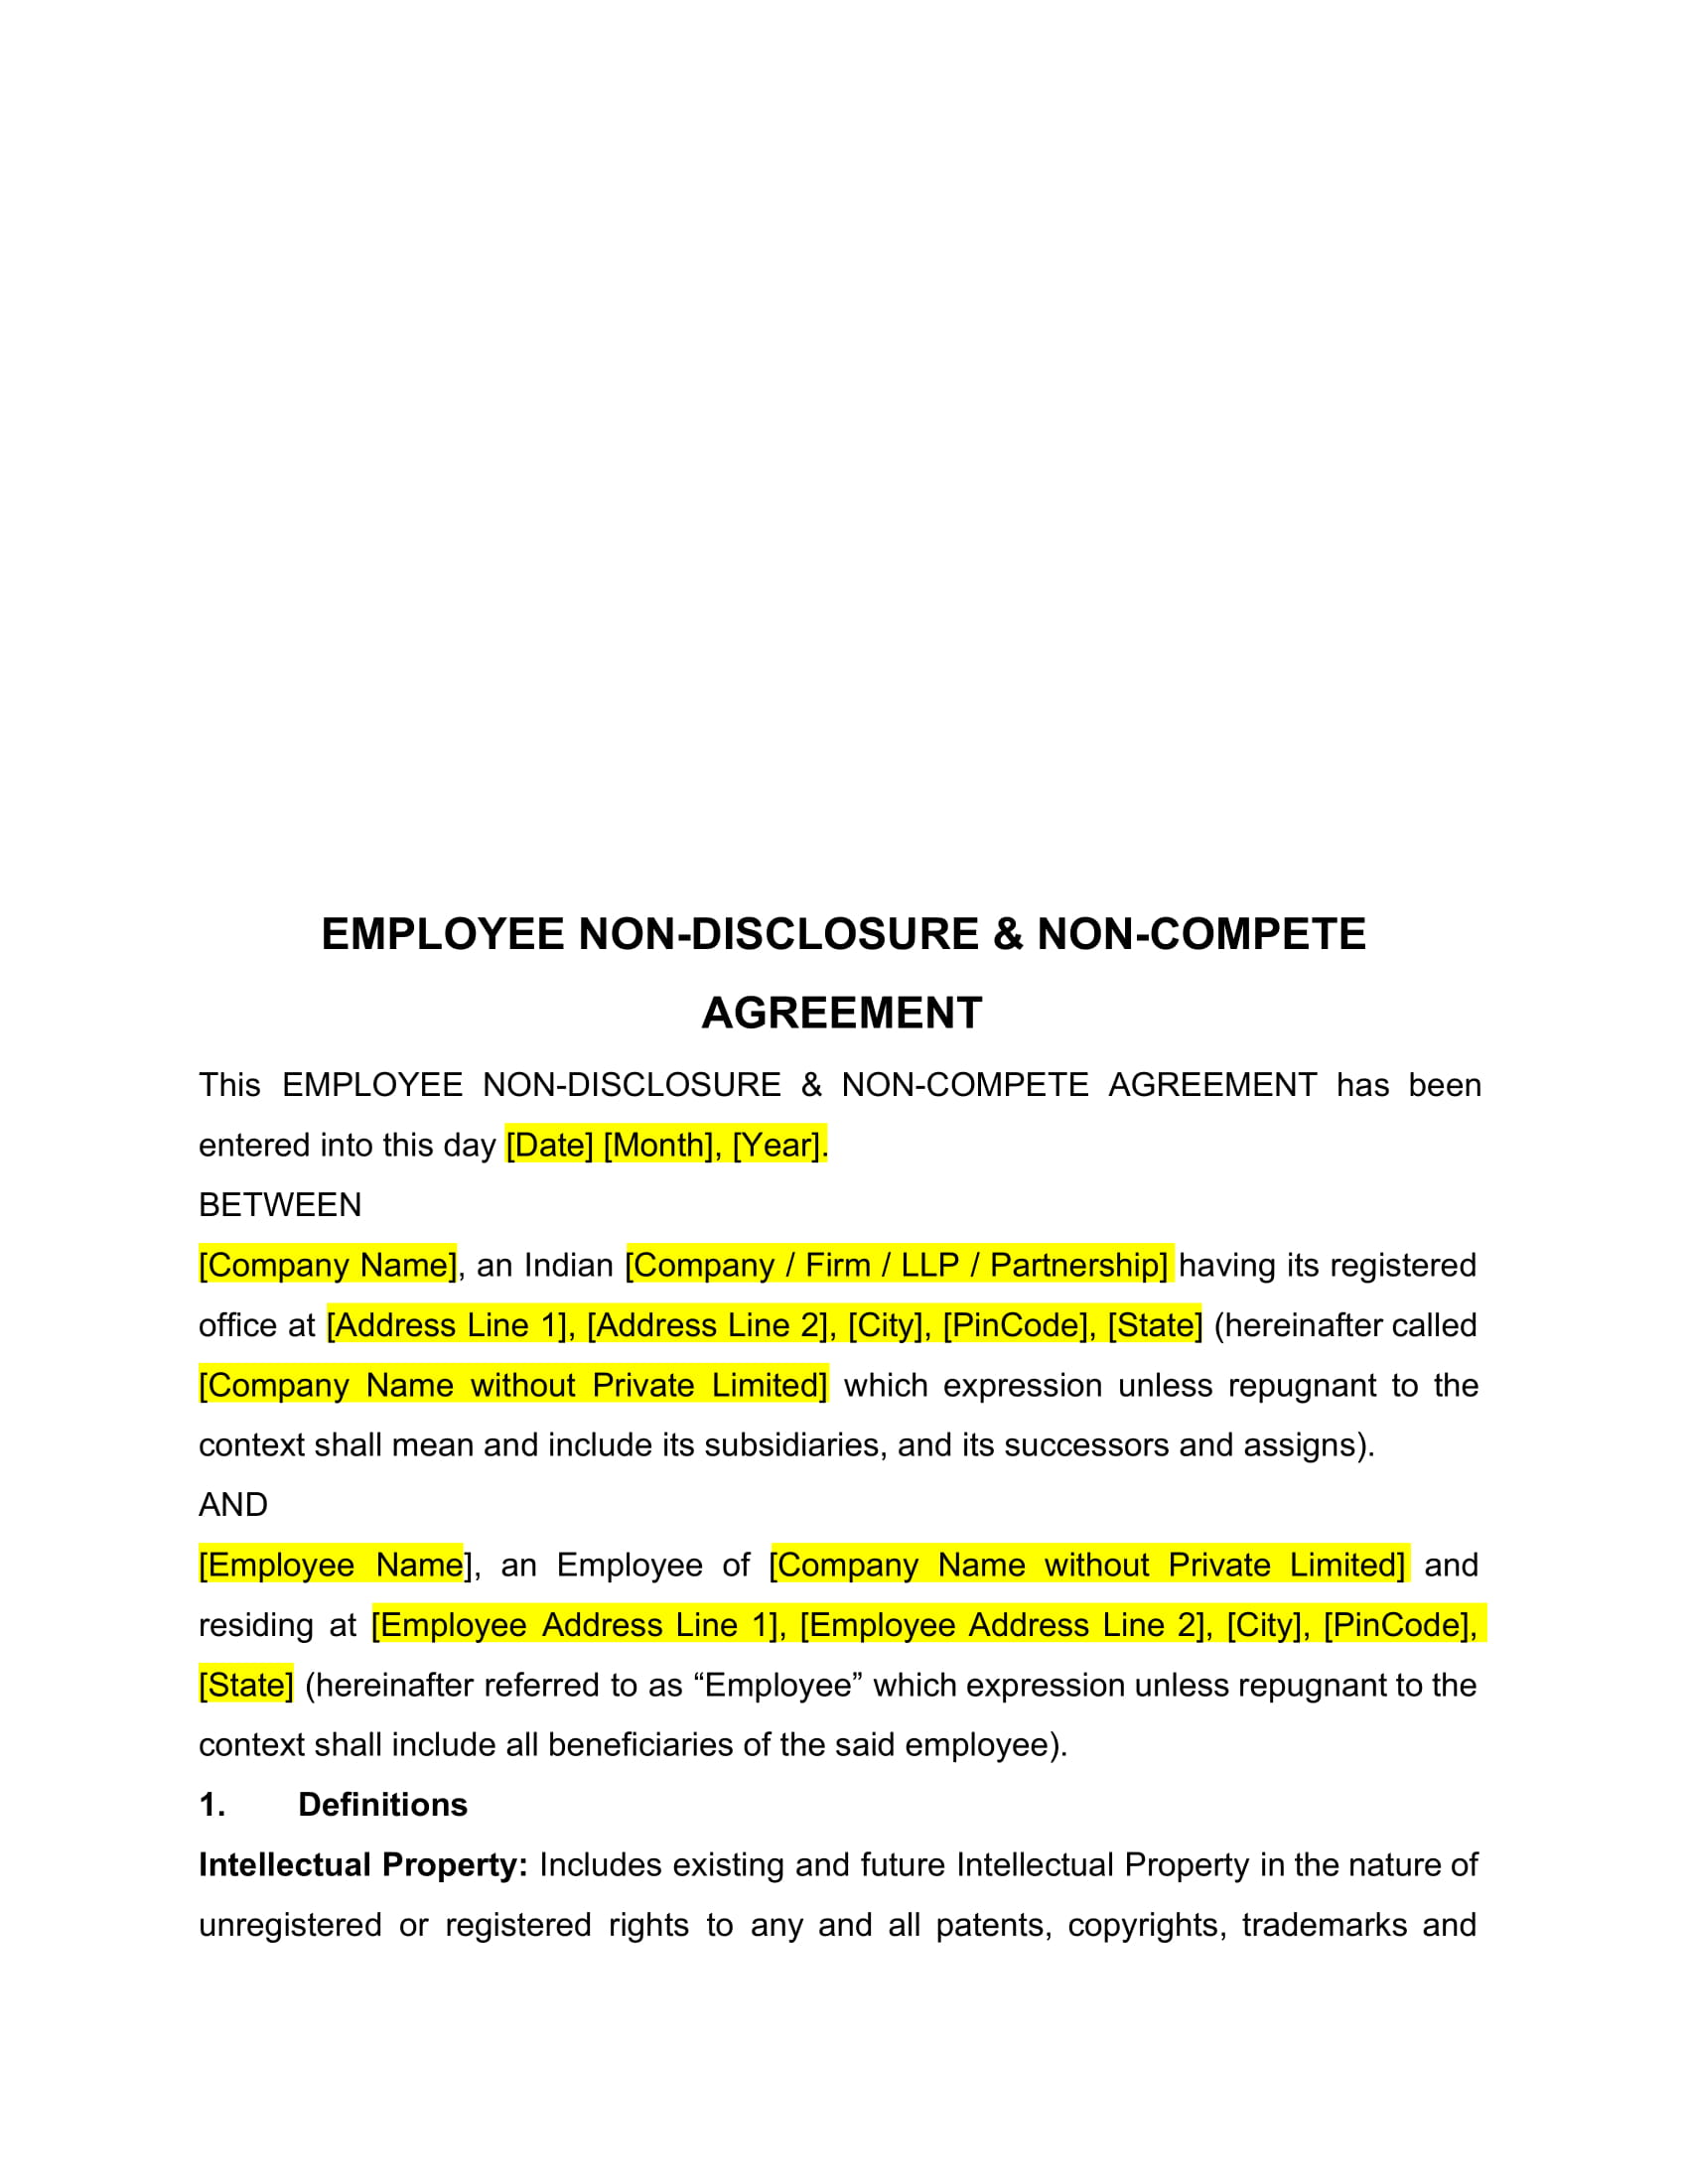 employee non disclosure non compete agreement contract form 1